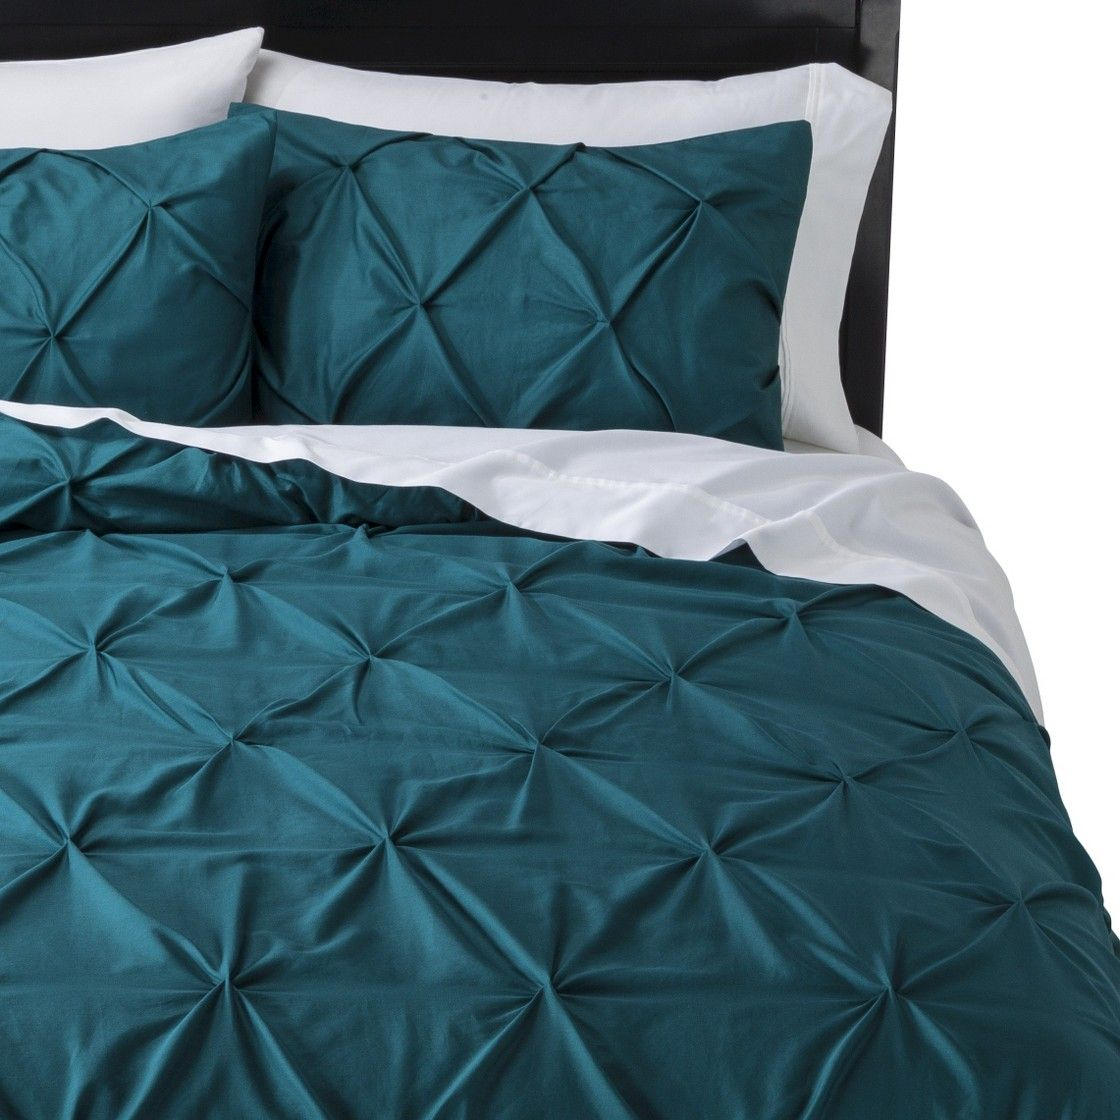 gets blue softer queen itm navy down washable wash alternative set pleat new only pinch the pinched machine comforter with every full is and pc